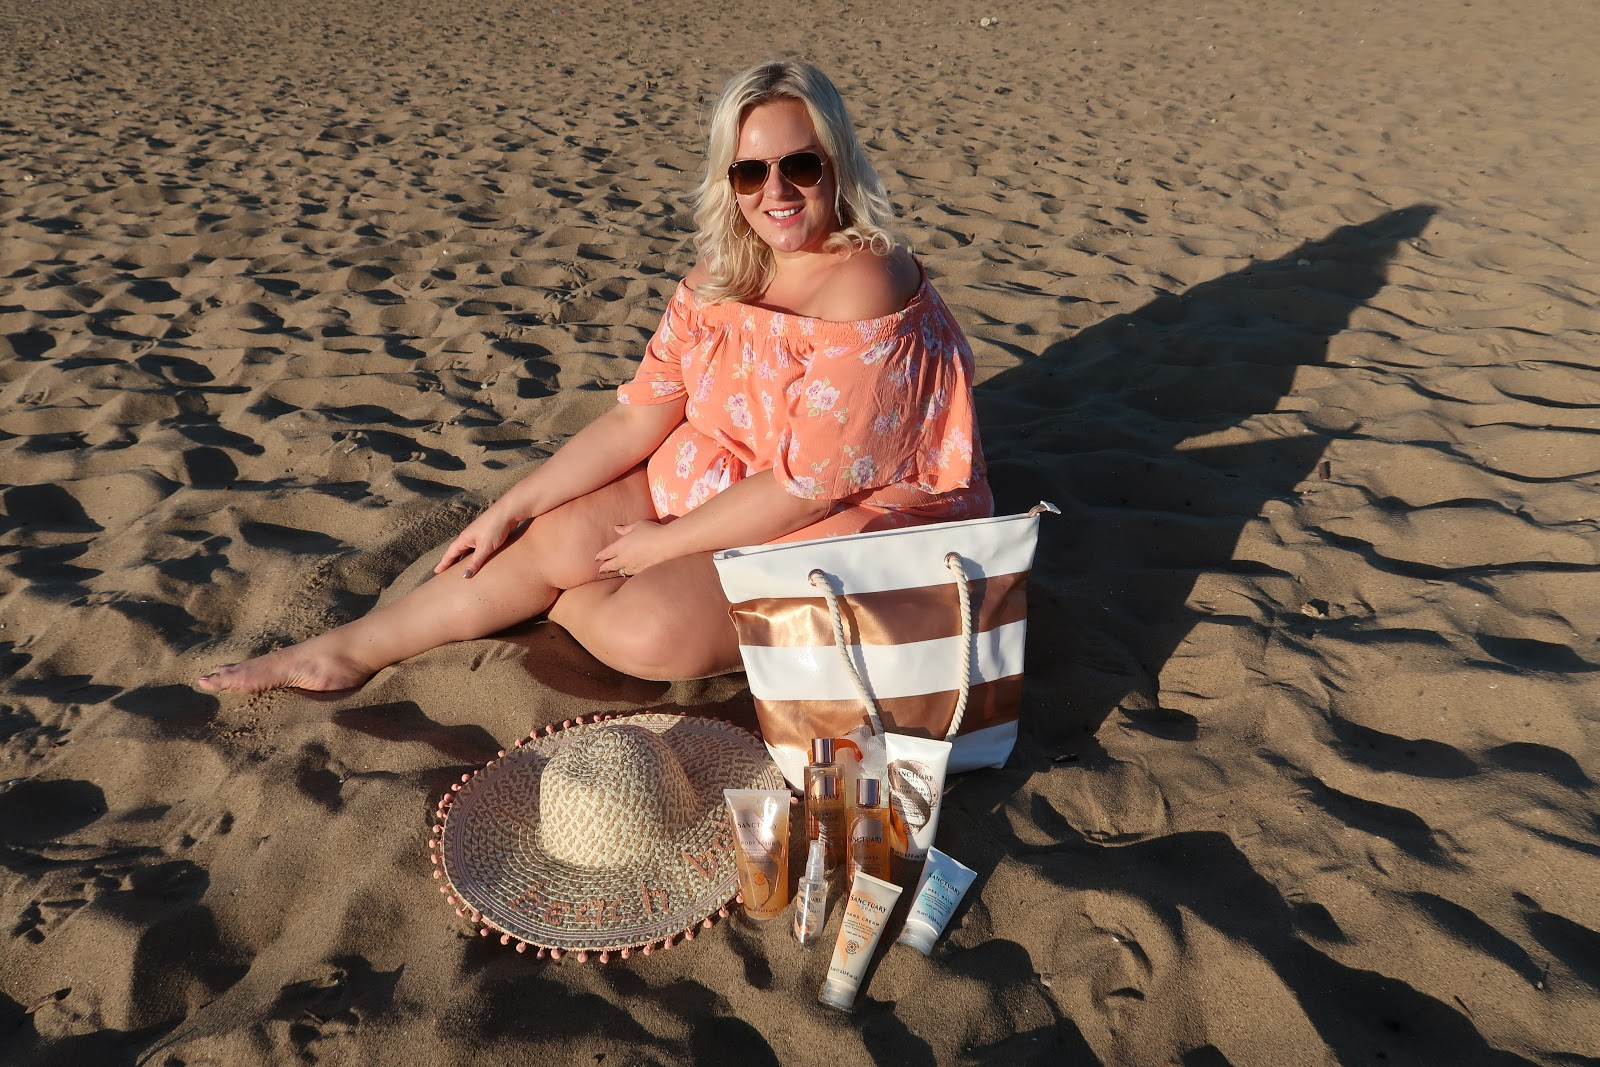 Get Ready For Warm Days with the Sanctuary Spa Summer Sun Beach Bag from Boots